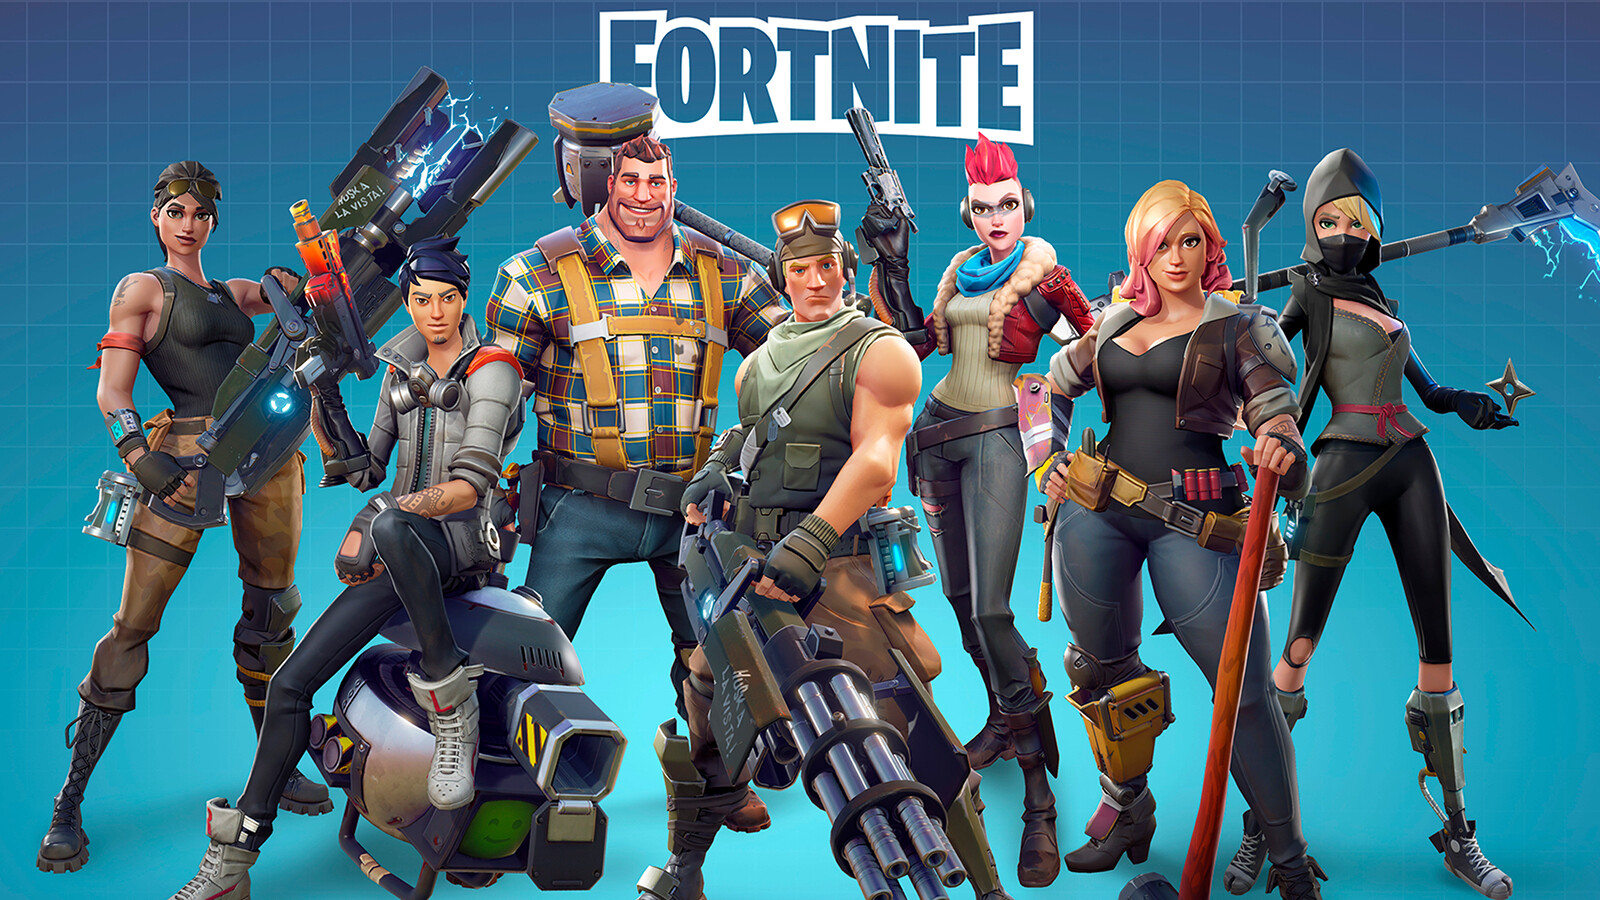 Dc5n United States It In English Created At 2018 08 09 1203 Circuit Board Additionally Iron Man Tony Stark House Minecraft On Telecomtalkinfo Fortnite For Android Gameplay Video Leaked Ahead Of Launch